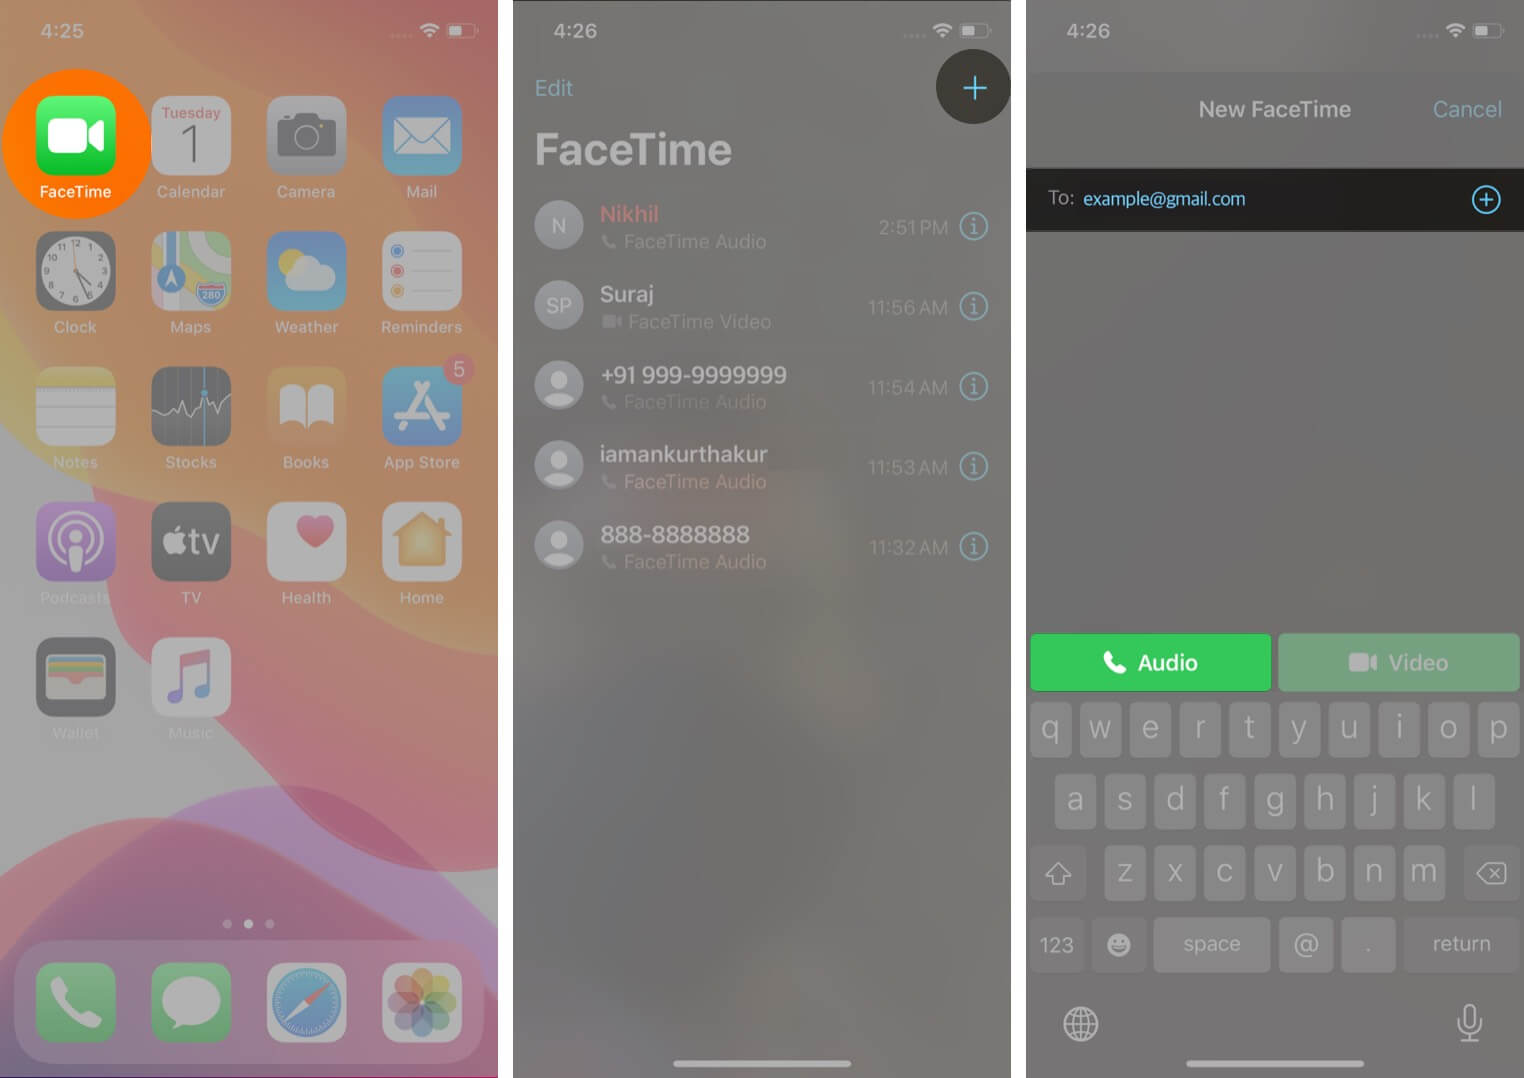 open facetime tap on plus and add contact to make facetime audio call on iphone